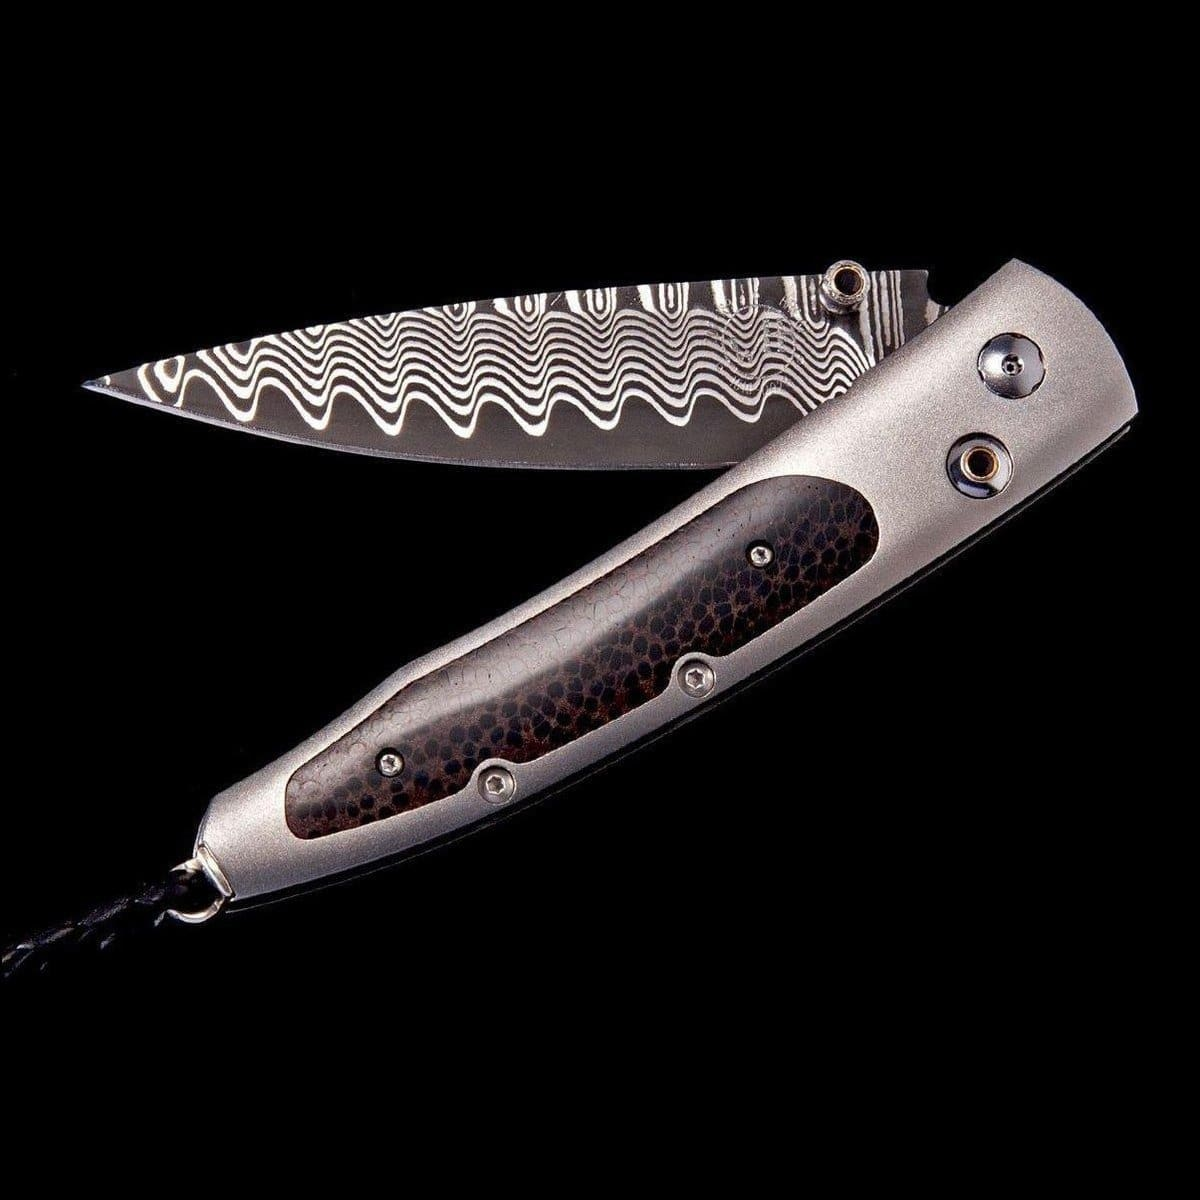 Lancet Island Wave Limited Edition Knife - B10 ISLAND WAVE-William Henry-Renee Taylor Gallery